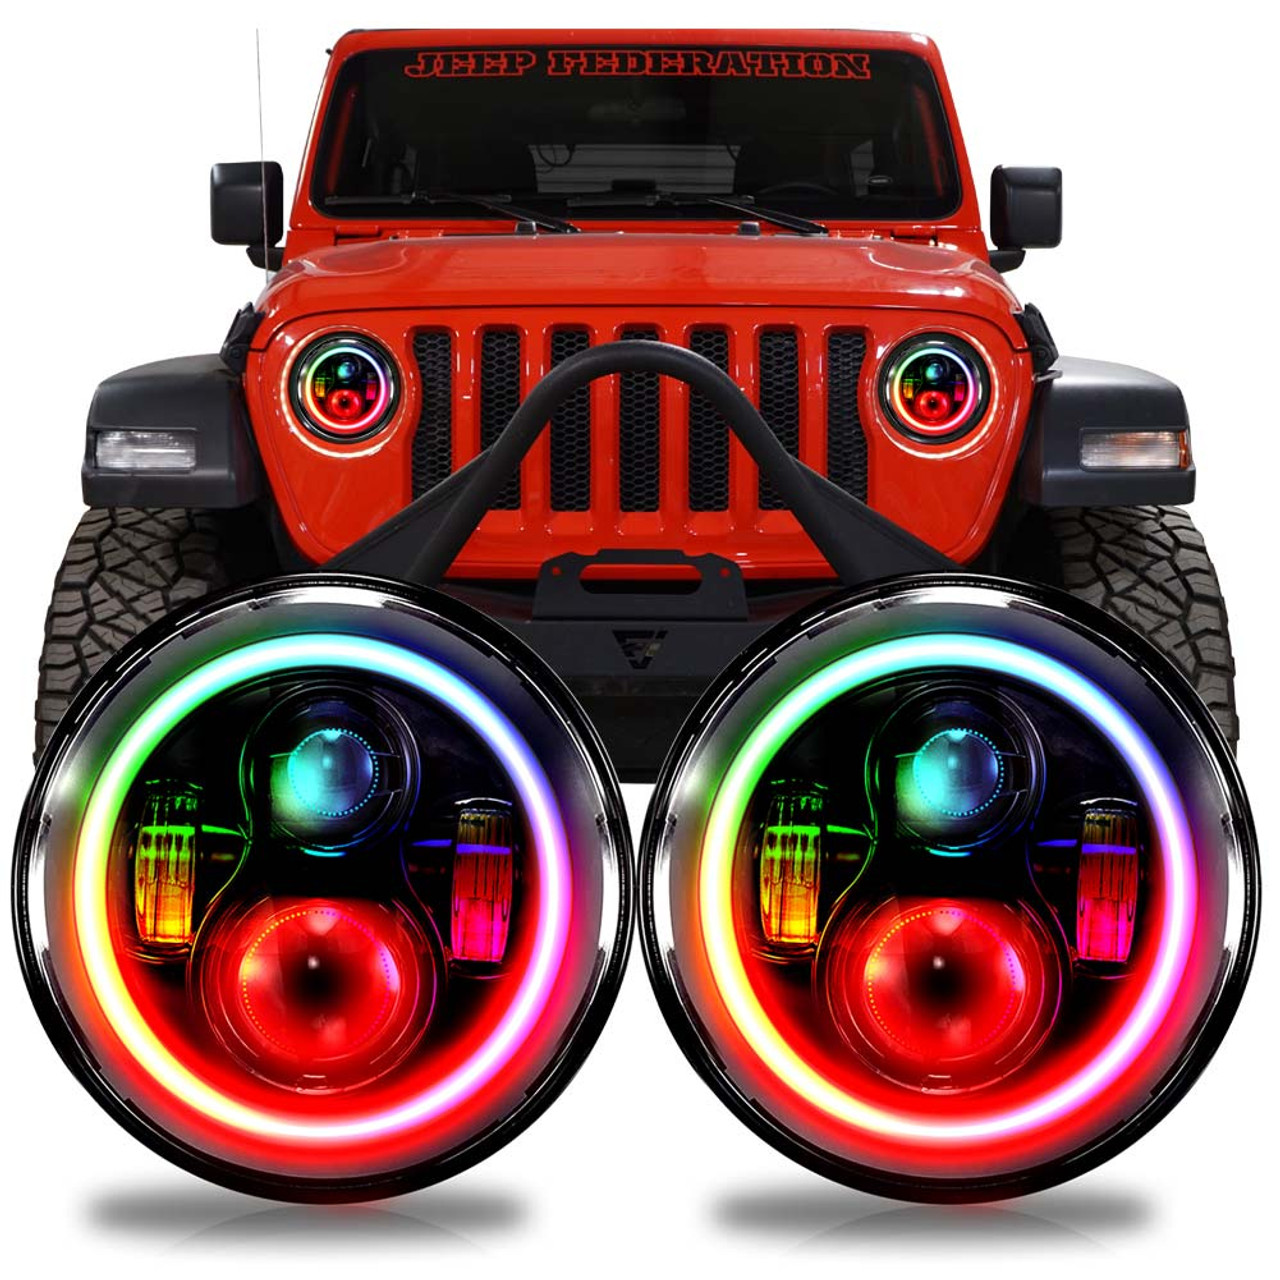 HALO RGB CHASE Projector LED Headlights for Wrangler JL & Gladiator 2018+